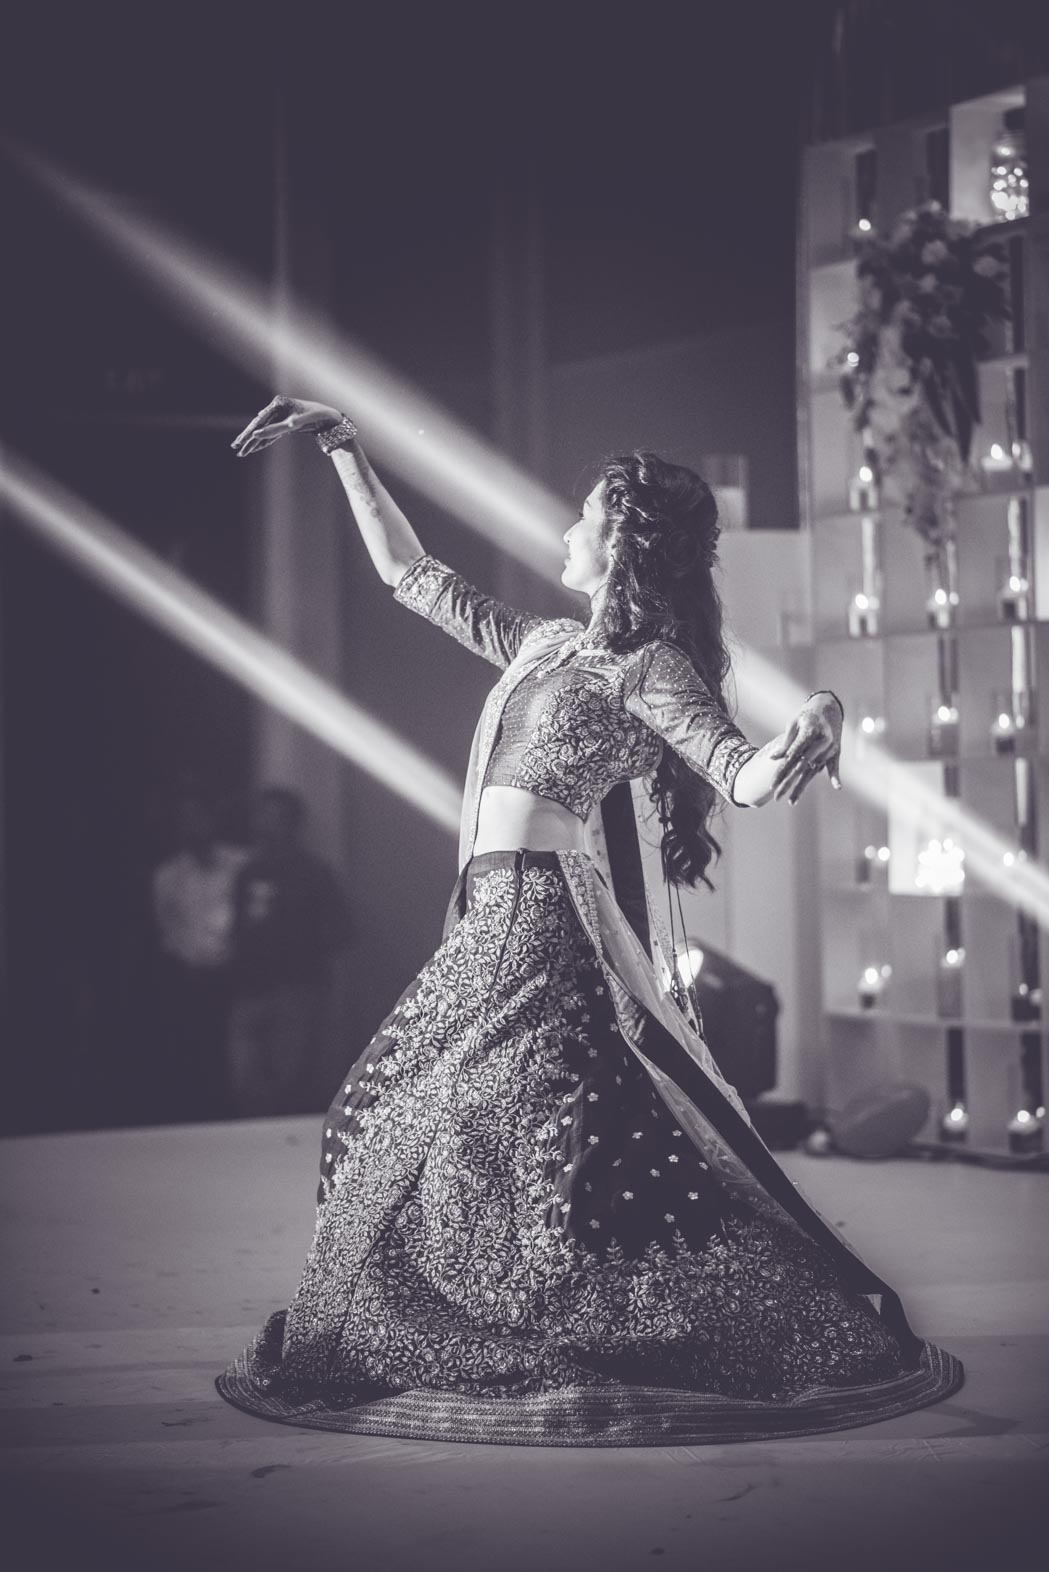 StRegis-Palladium-Mumbai-Candid-Wedding-Photography-70